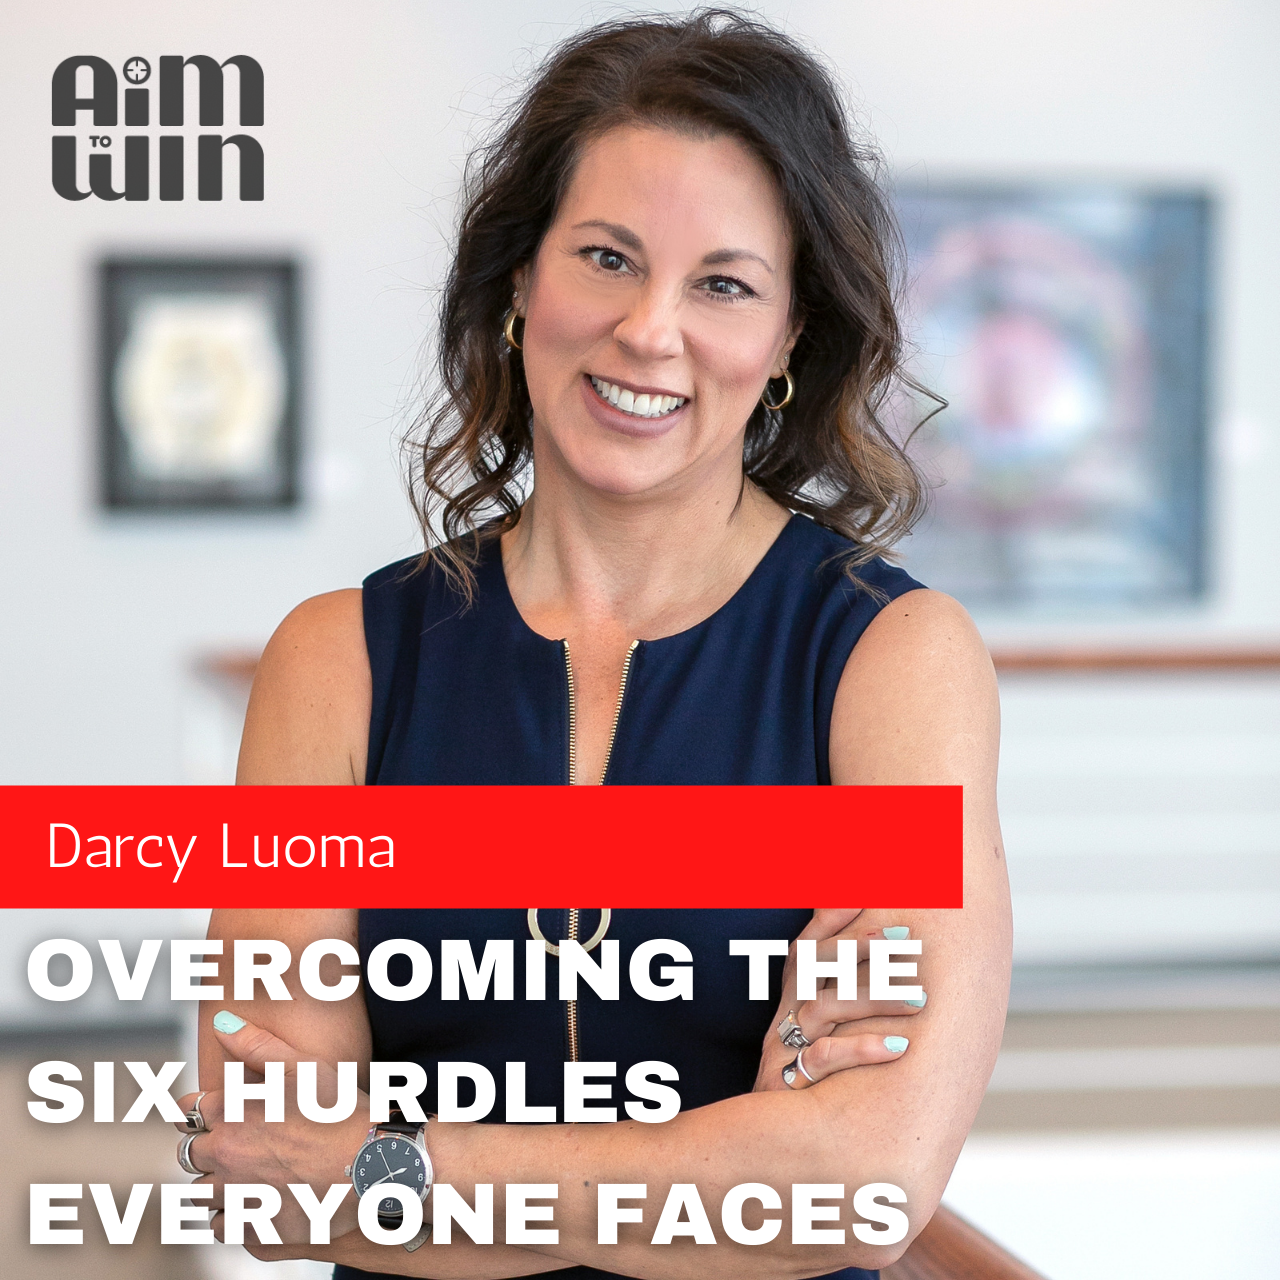 Darcy Luoma